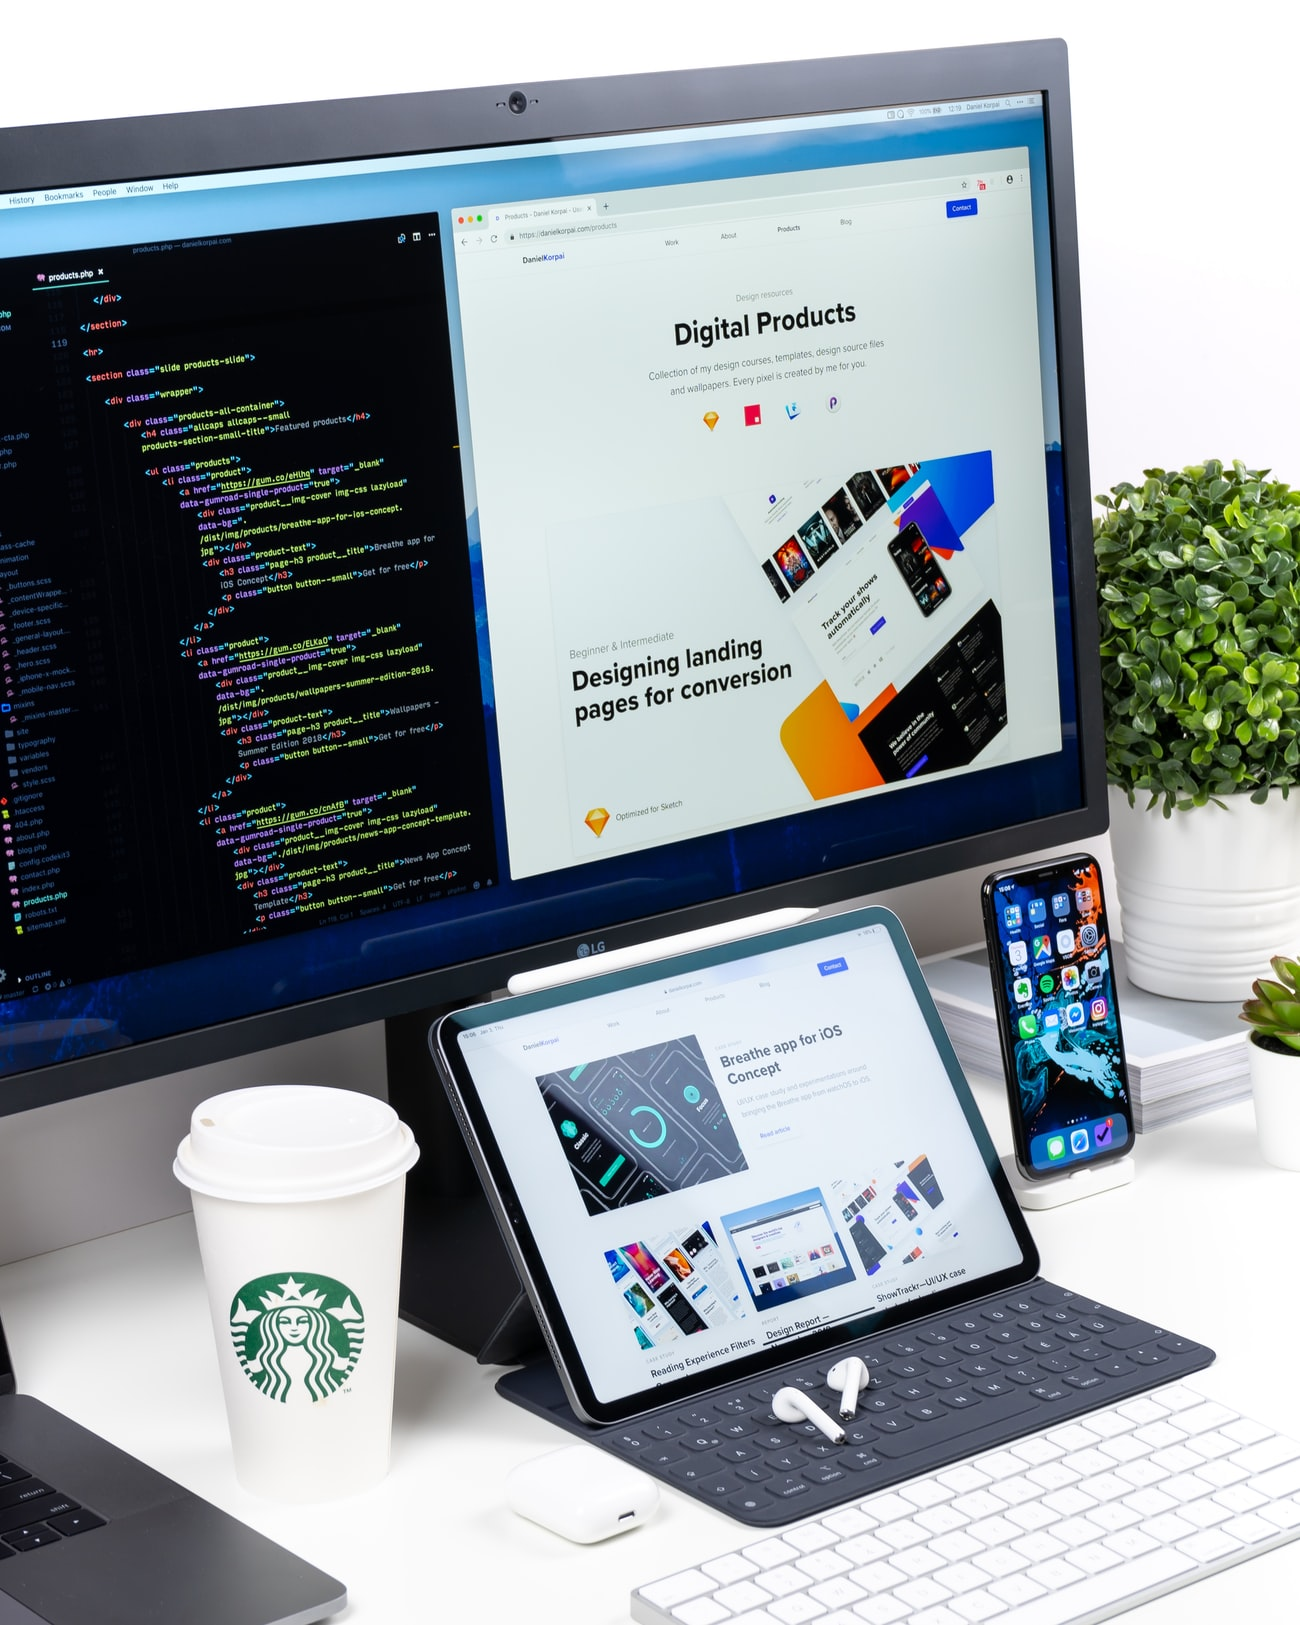 tablet with a Starbucks coffee cup and desktop PC